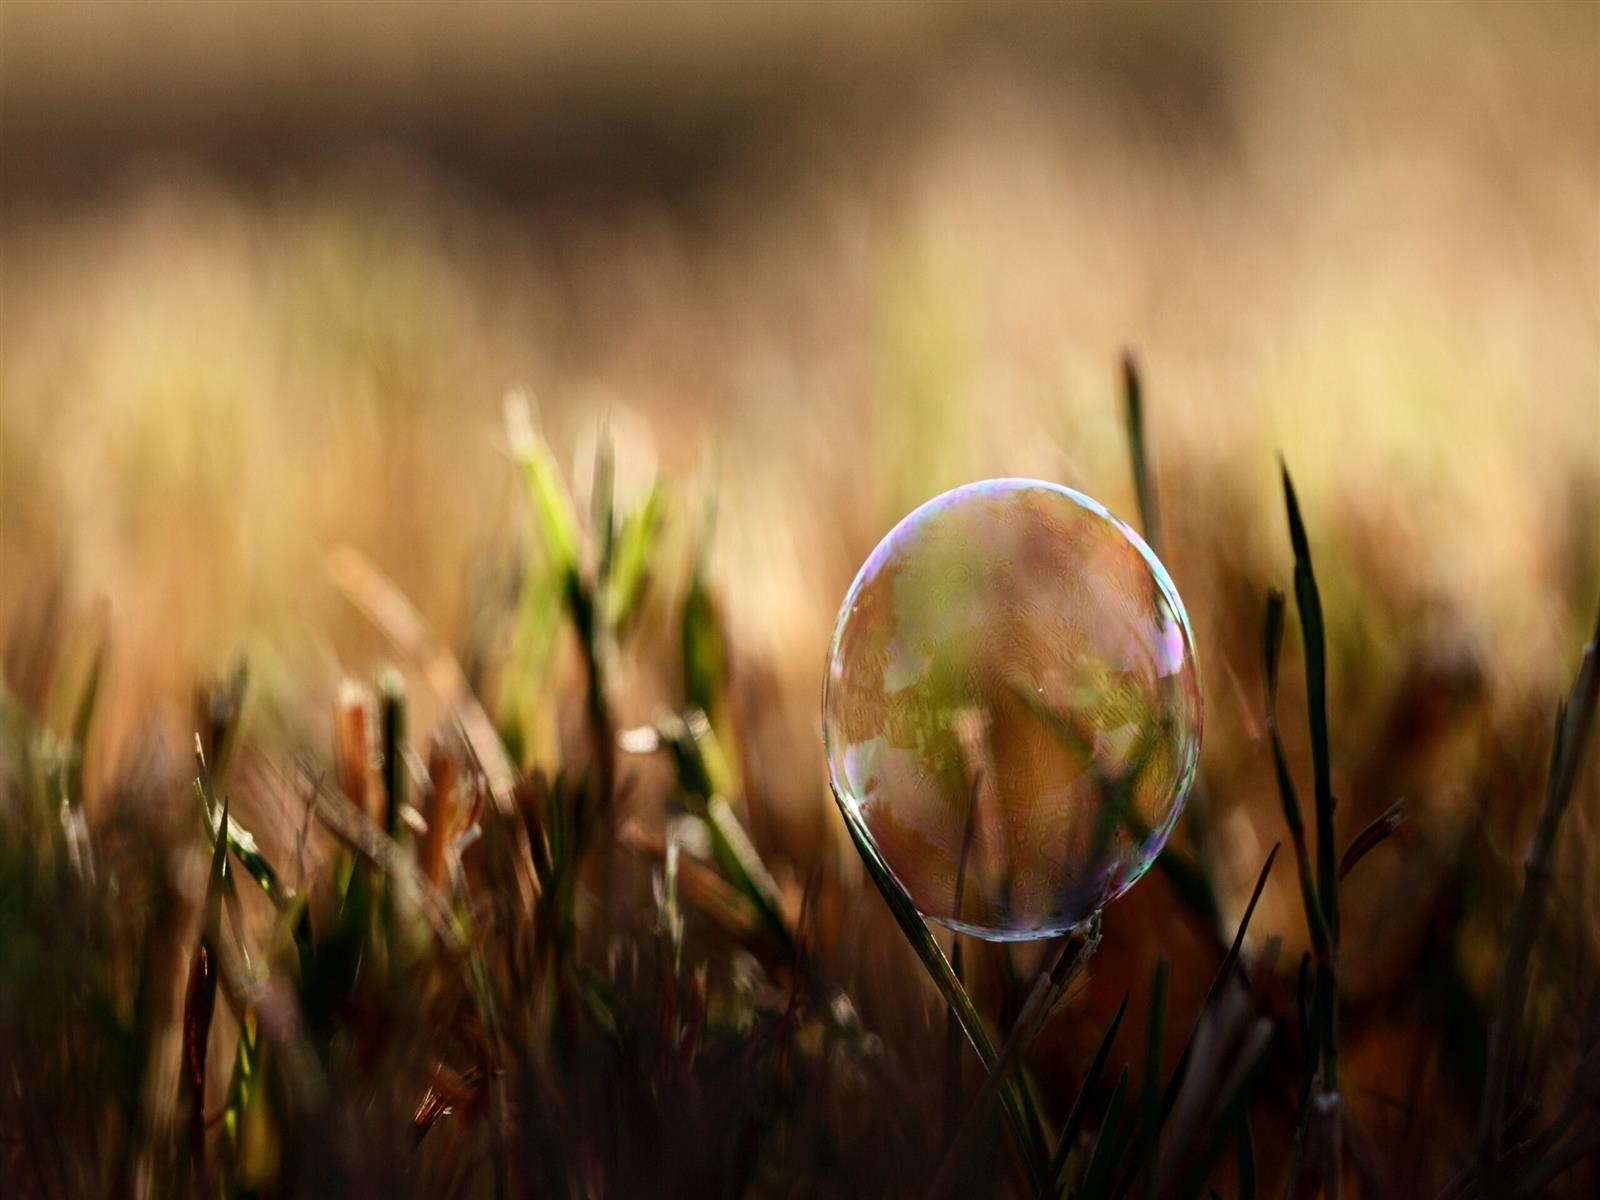 1600x1200 3D Bubble in Grass Wallpaper